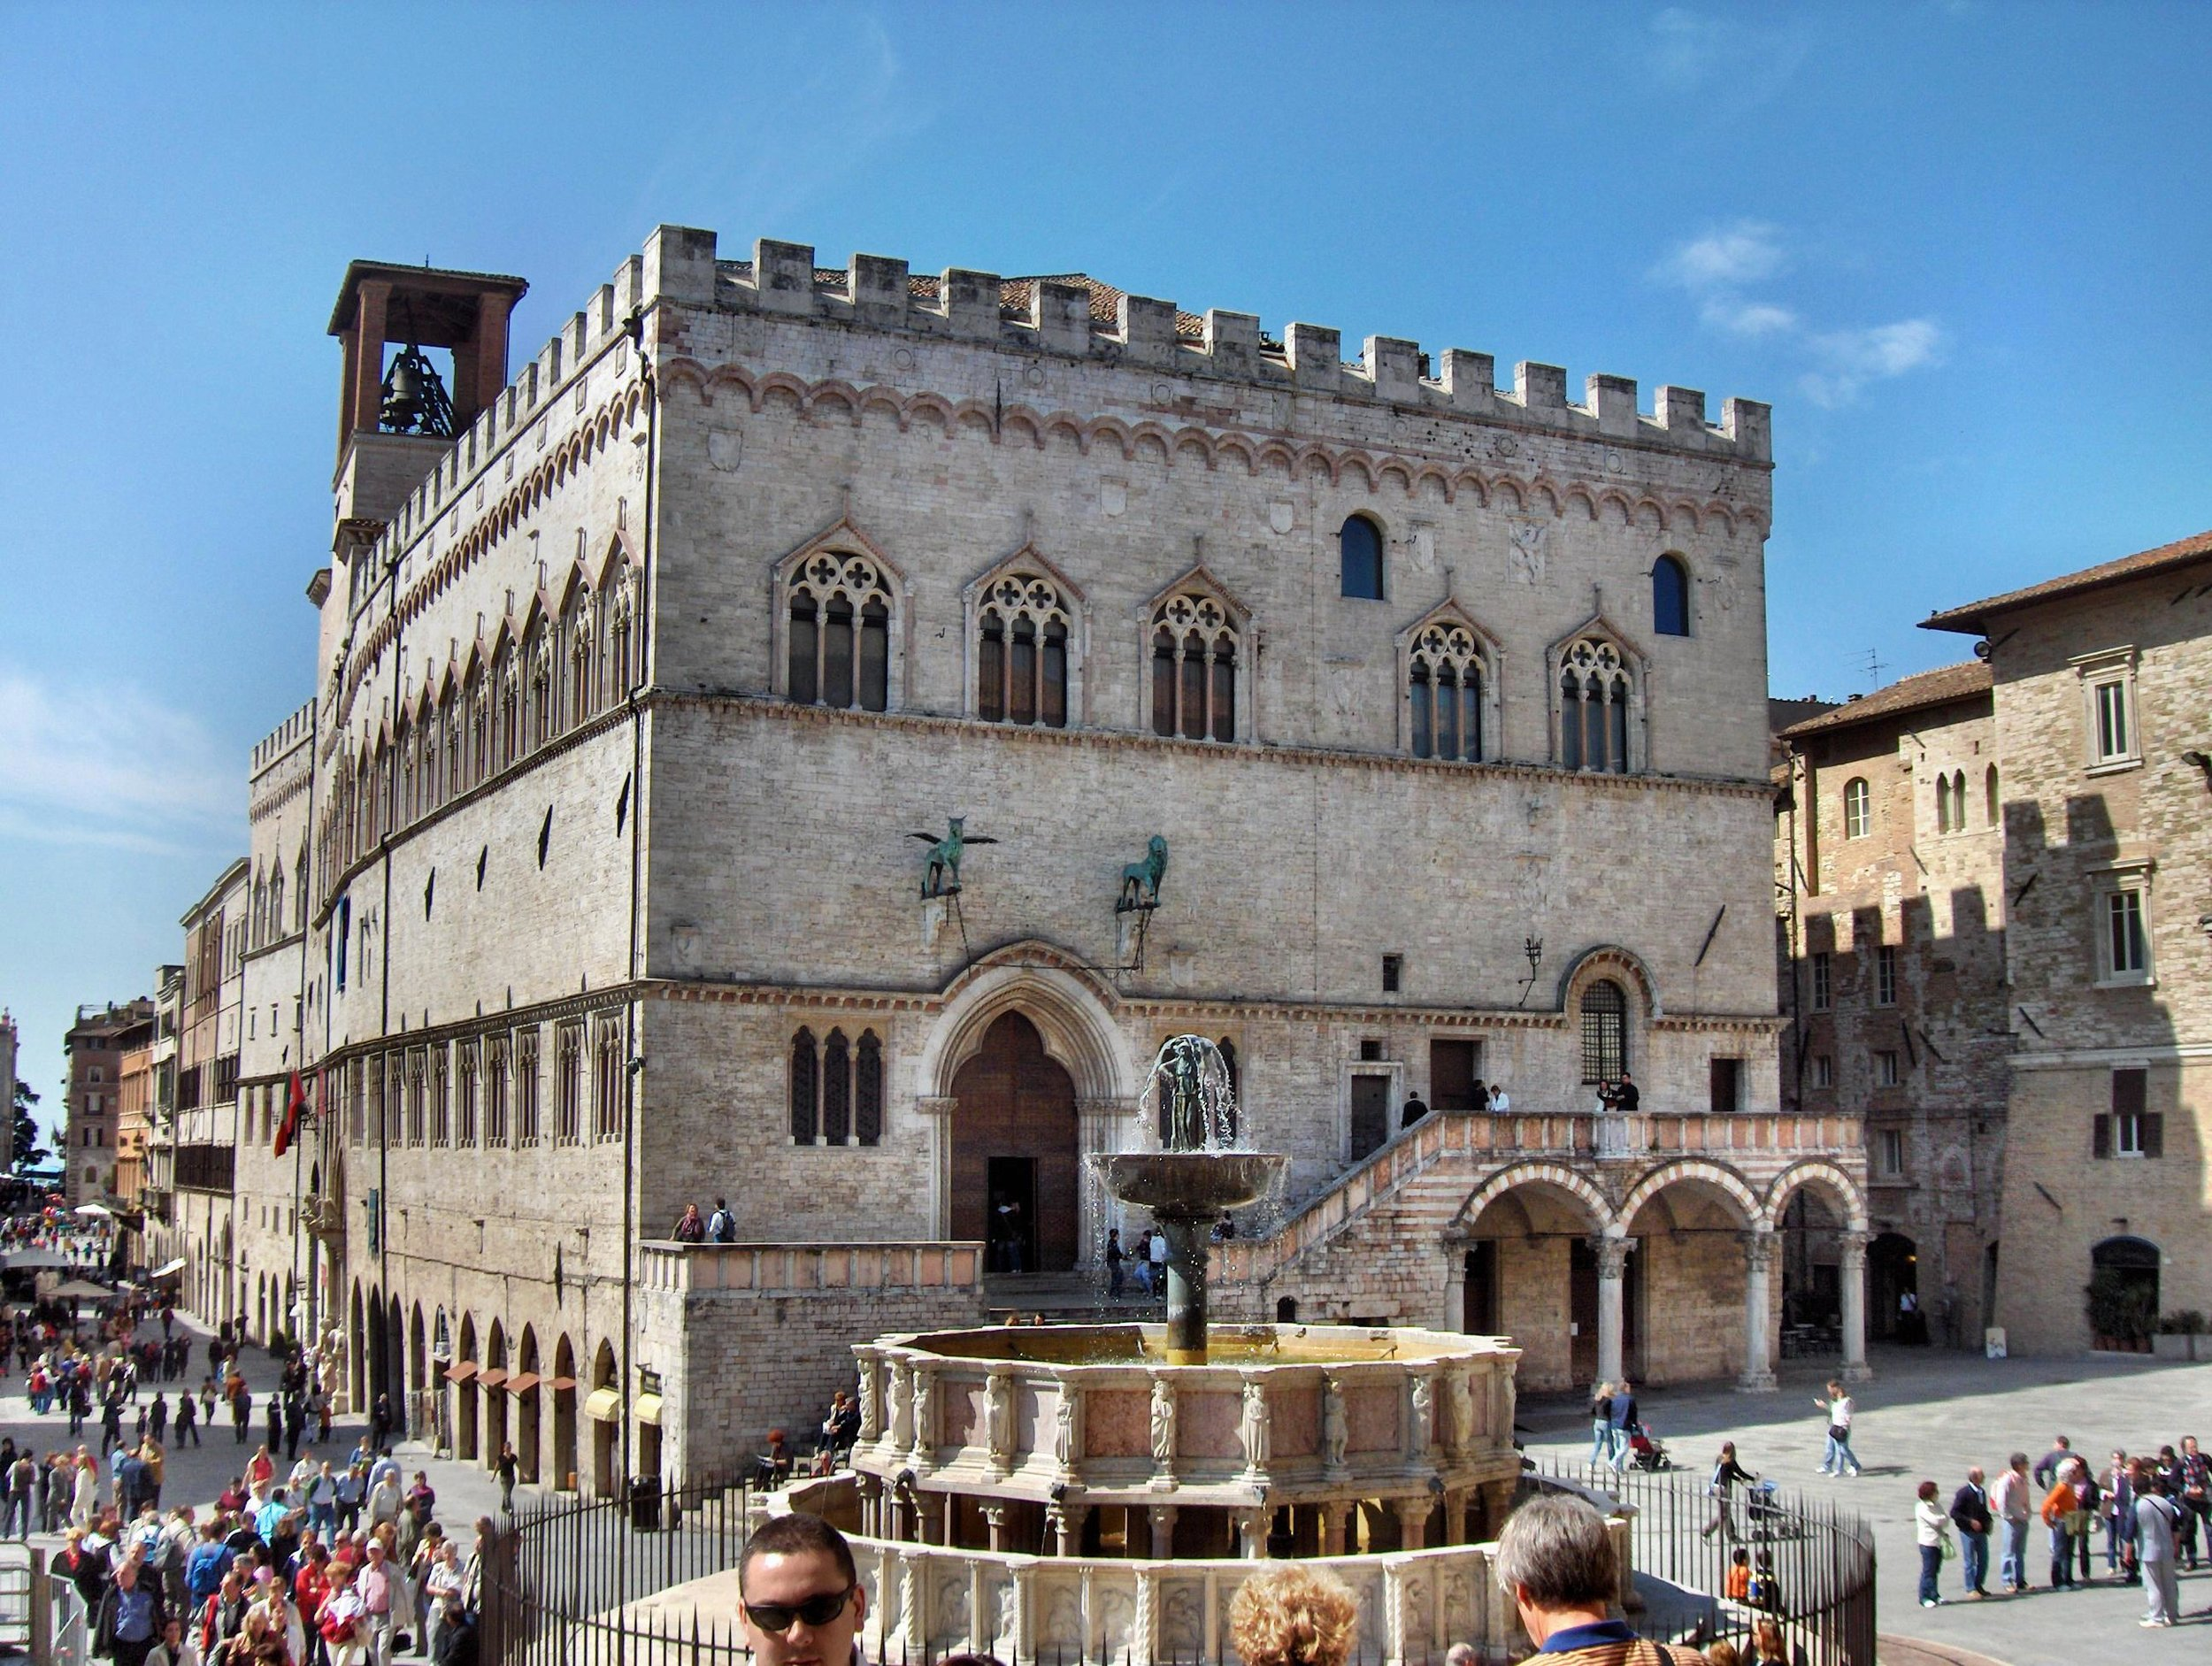 What-to-see-in-Perugia-Visit-Perugia-a-complete-guide-to-Perugia-Italy-Umbria-The-Roman-Guy.jpg